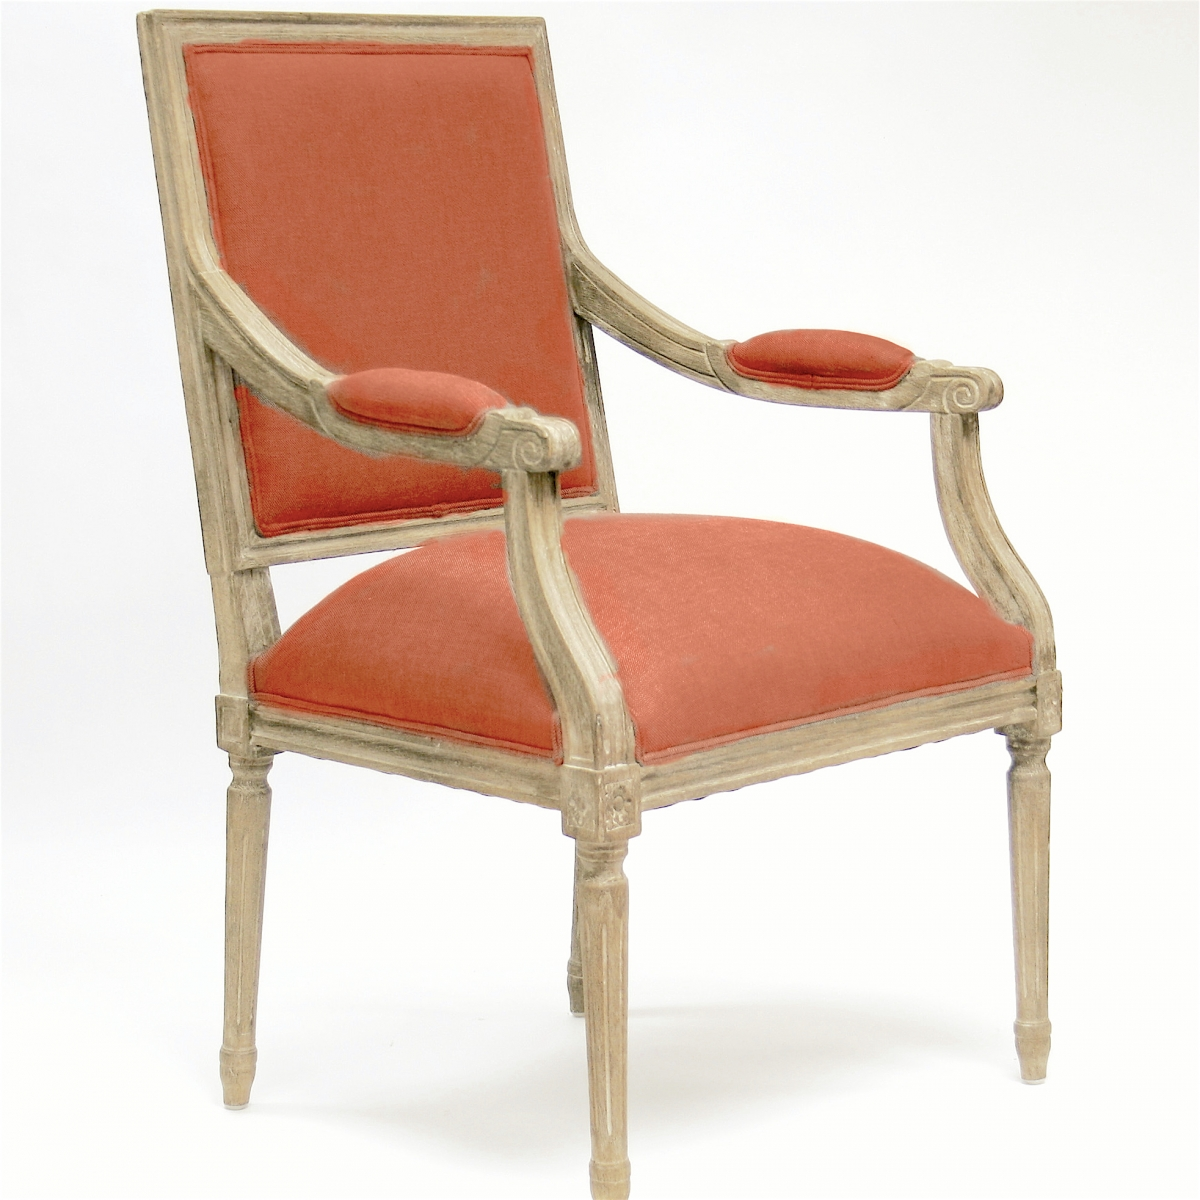 Coral Chair 900 Coral Zentique Inc Louis Fabric Arm Chair B008 E272